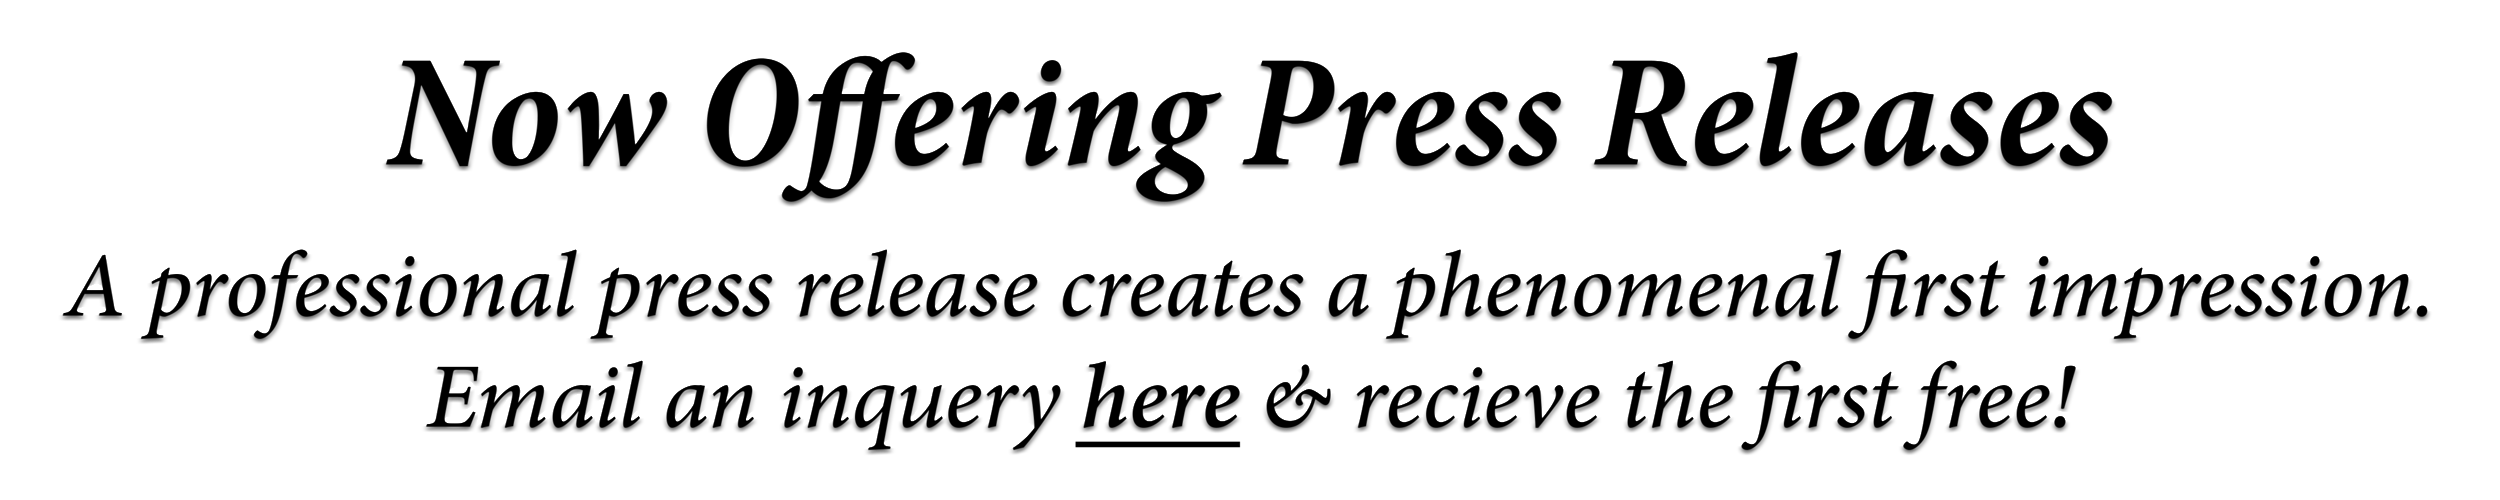 Press Release Banner.png